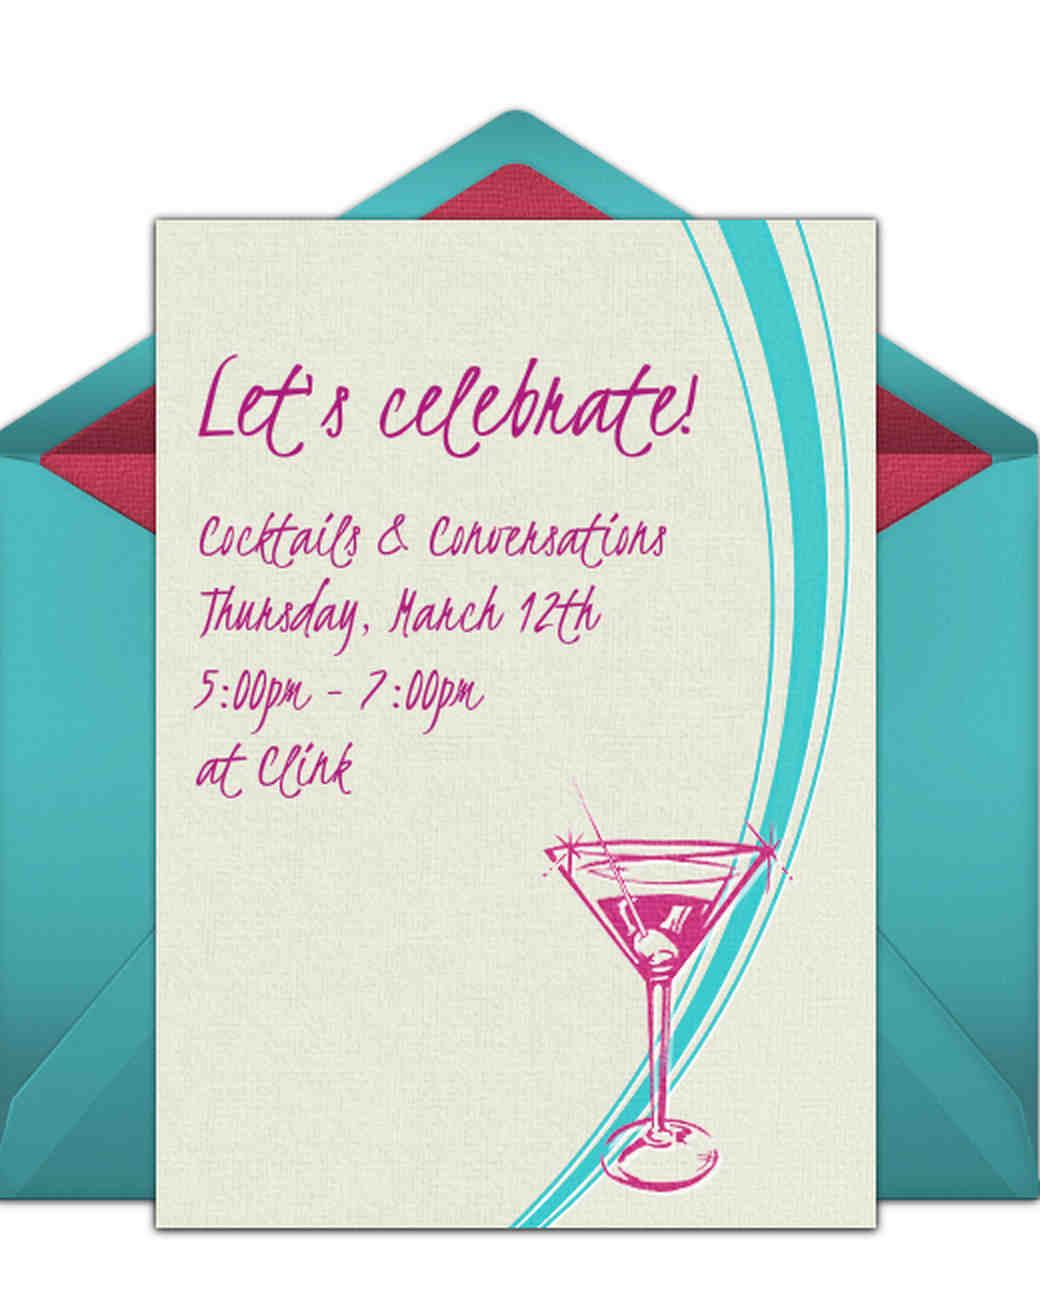 paperless-engagement-party-invitations-punchbowl-martini-0416.jpg